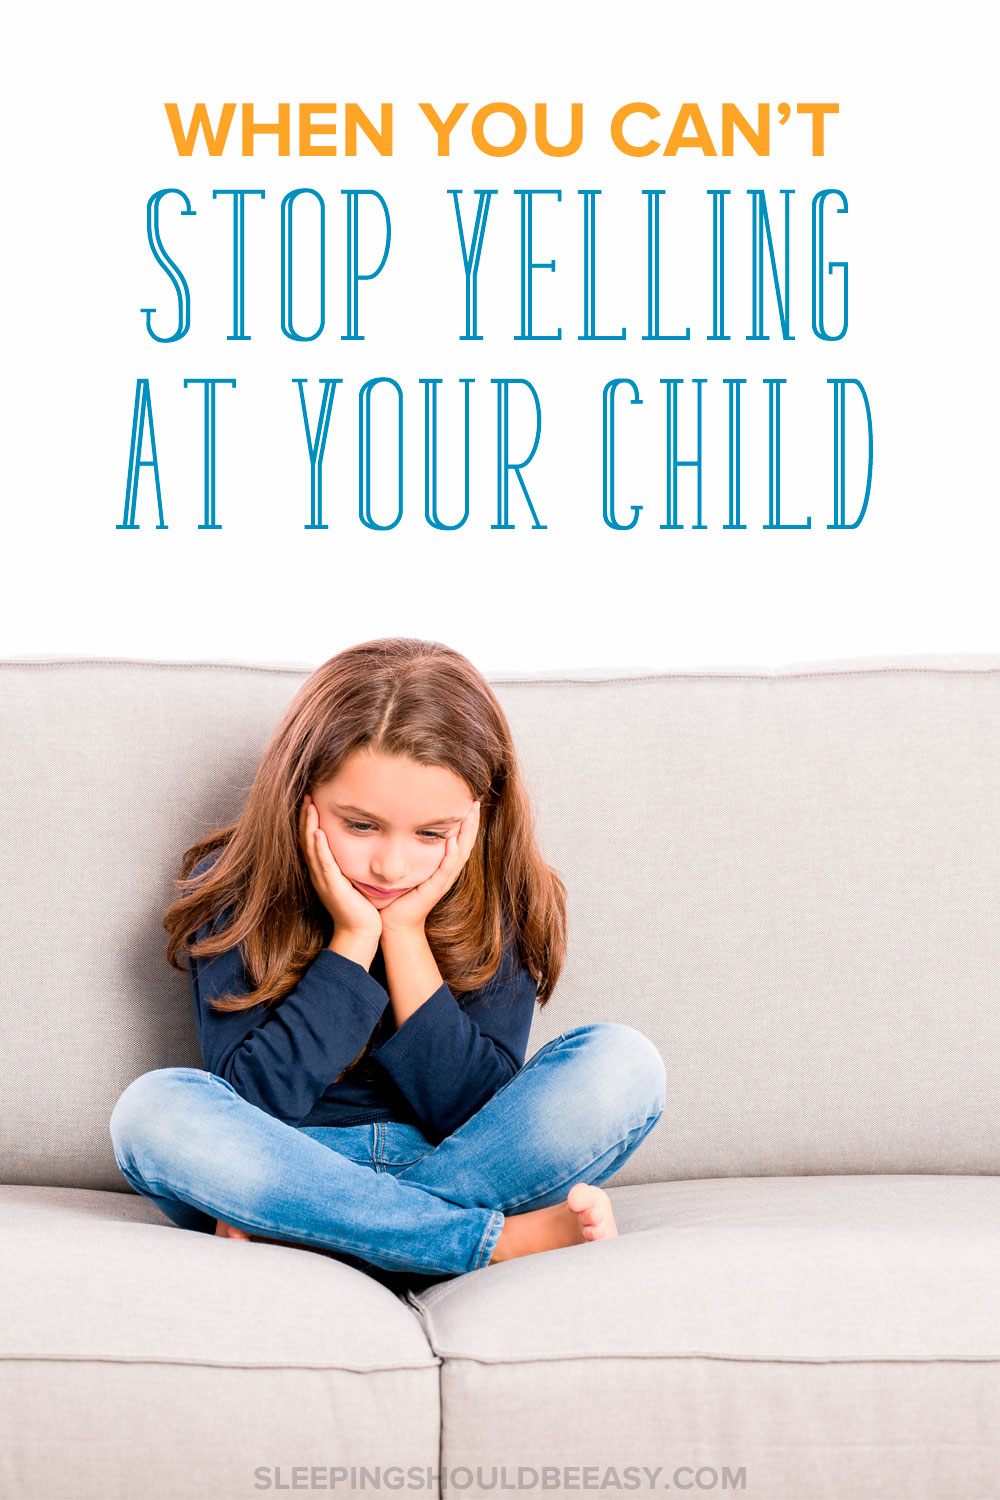 Do you struggle with losing your temper with your children? Discover how to stop yelling at your kids, control your anger and keep your patience.